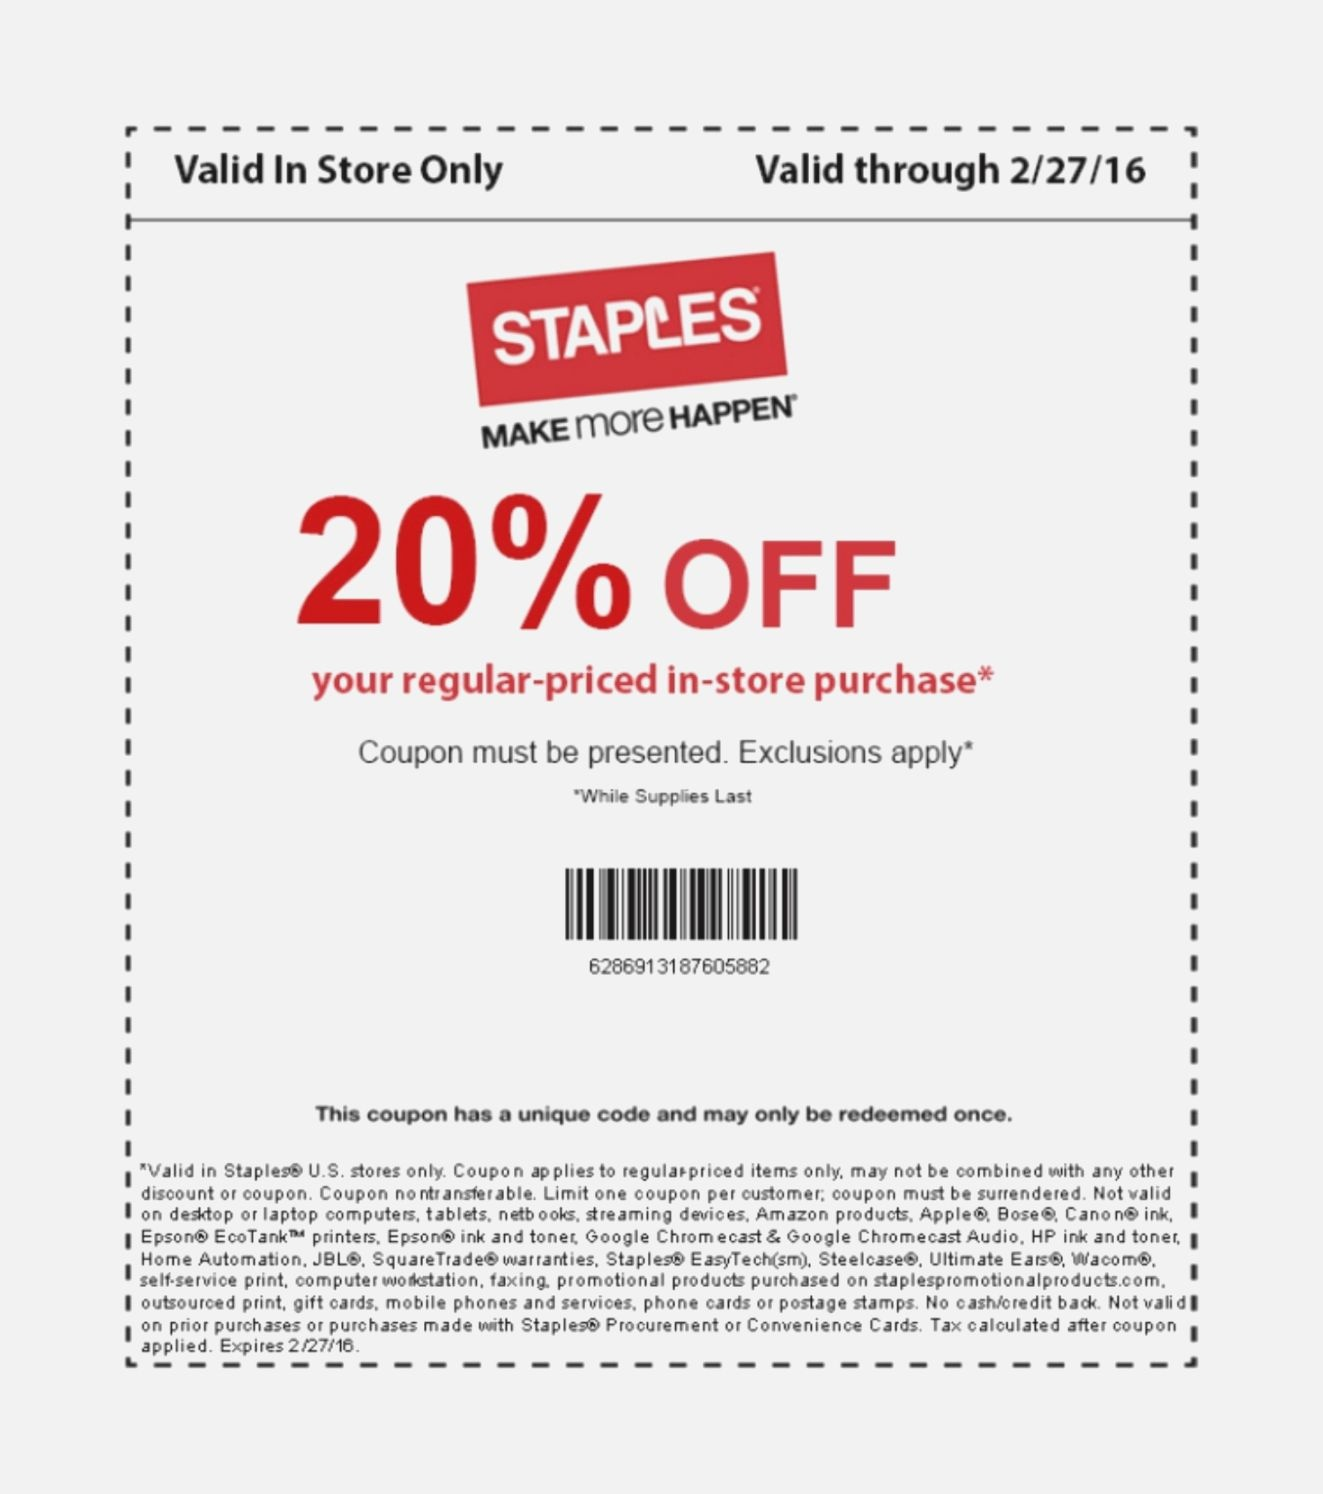 Adaptable Staples Printable Coupons | Jeettp - Free Printable American Eagle Coupons